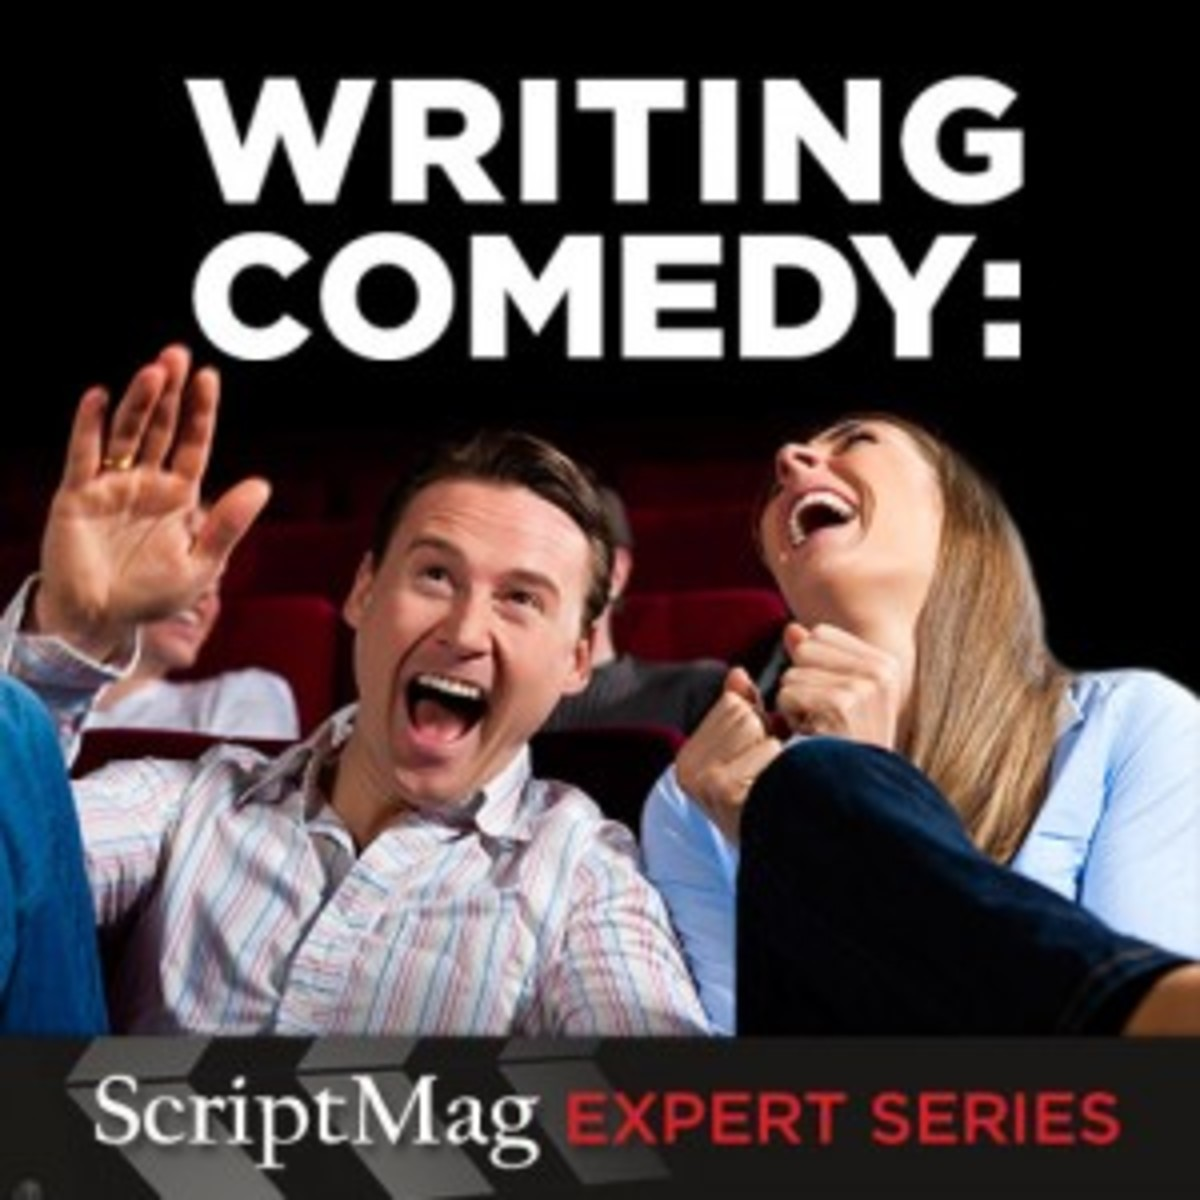 Writing Comedy: ScriptMag Expert Series